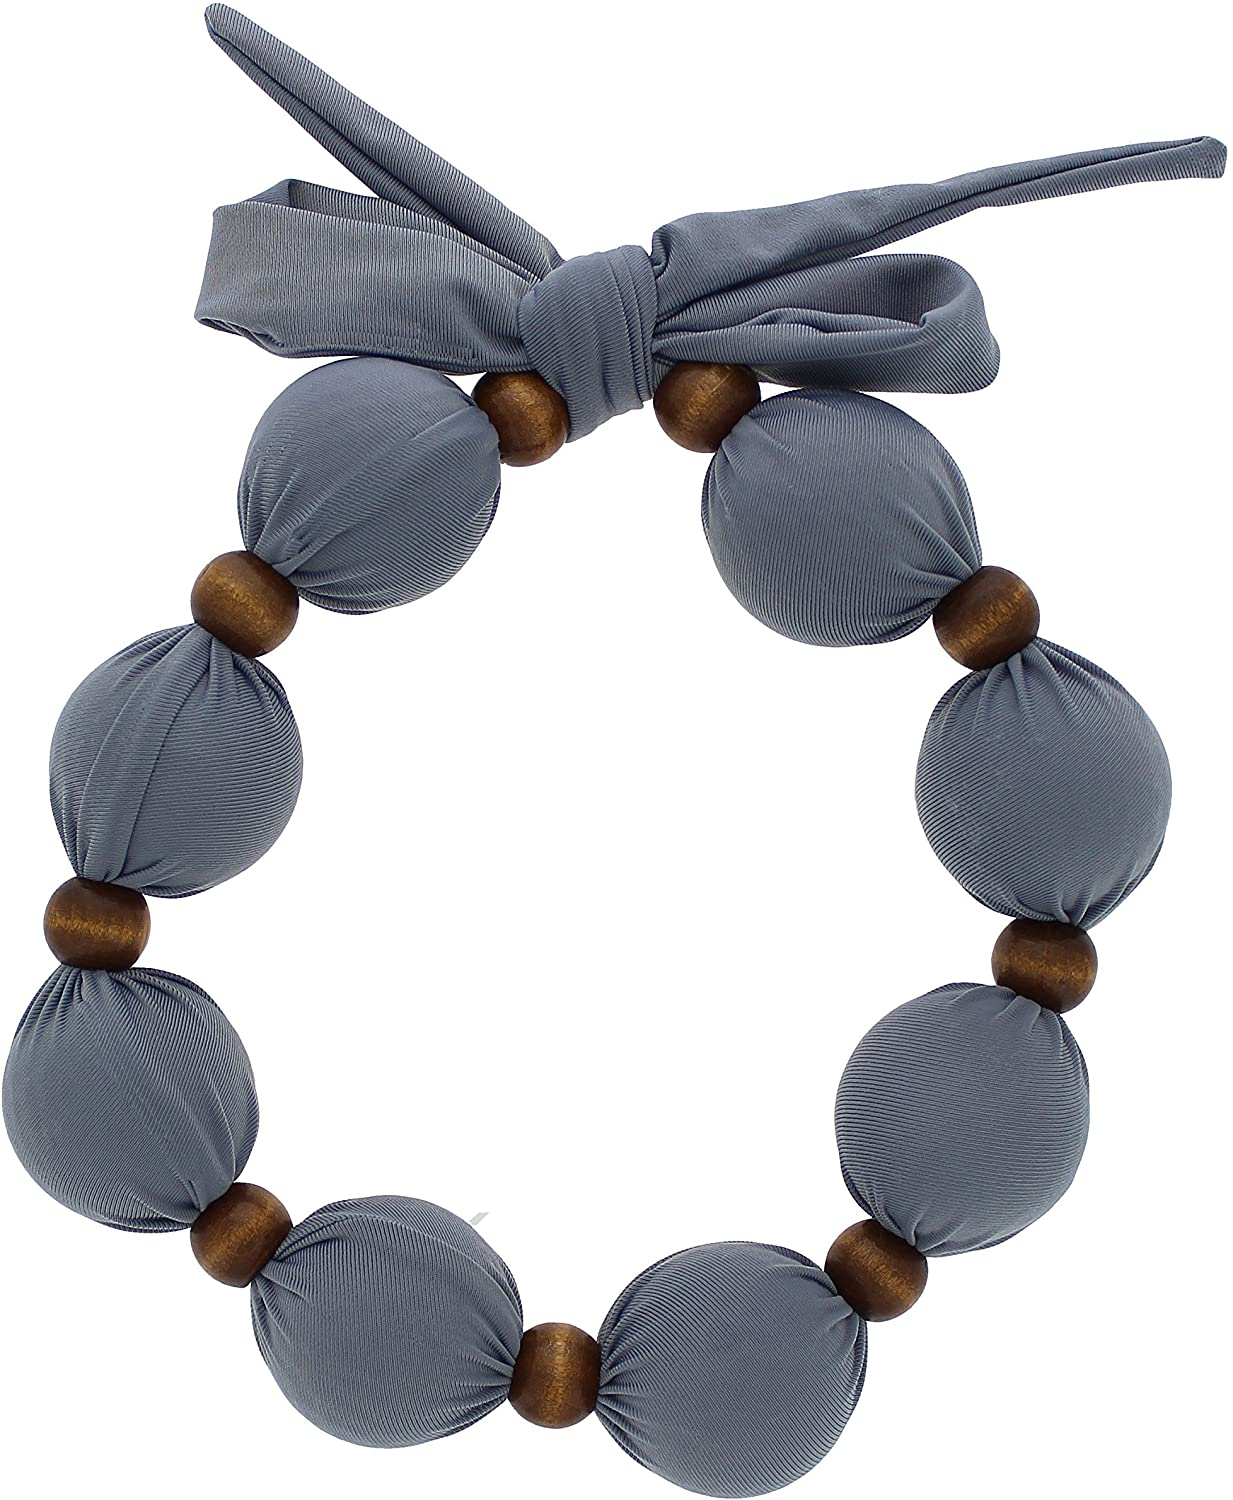 Nano-Ice Cooling Necklace - Grey | Beat The Heat in Style! | Take Out of Freezer for Hours of Cooling Relief!